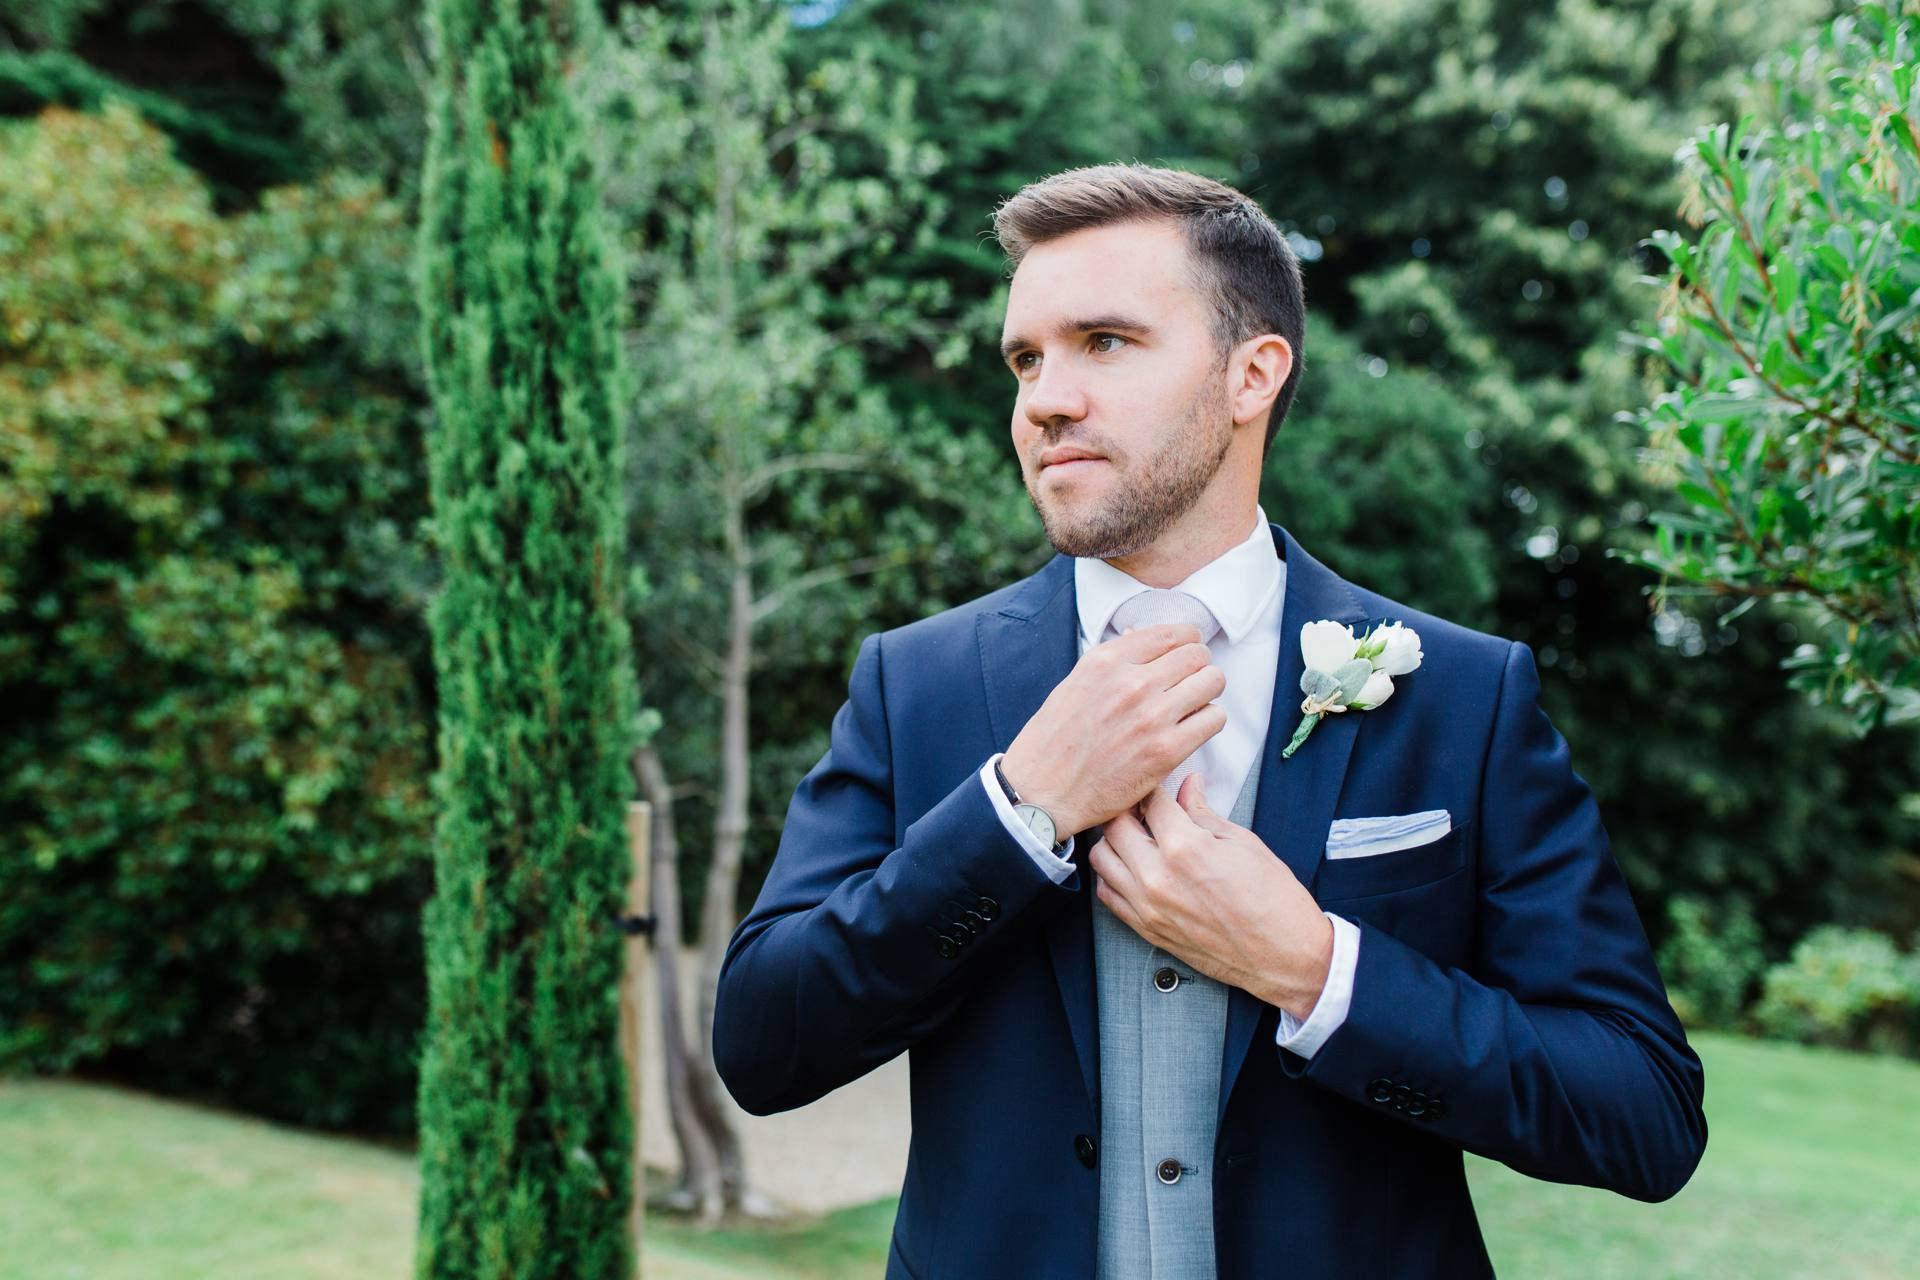 Groom straightening his tie